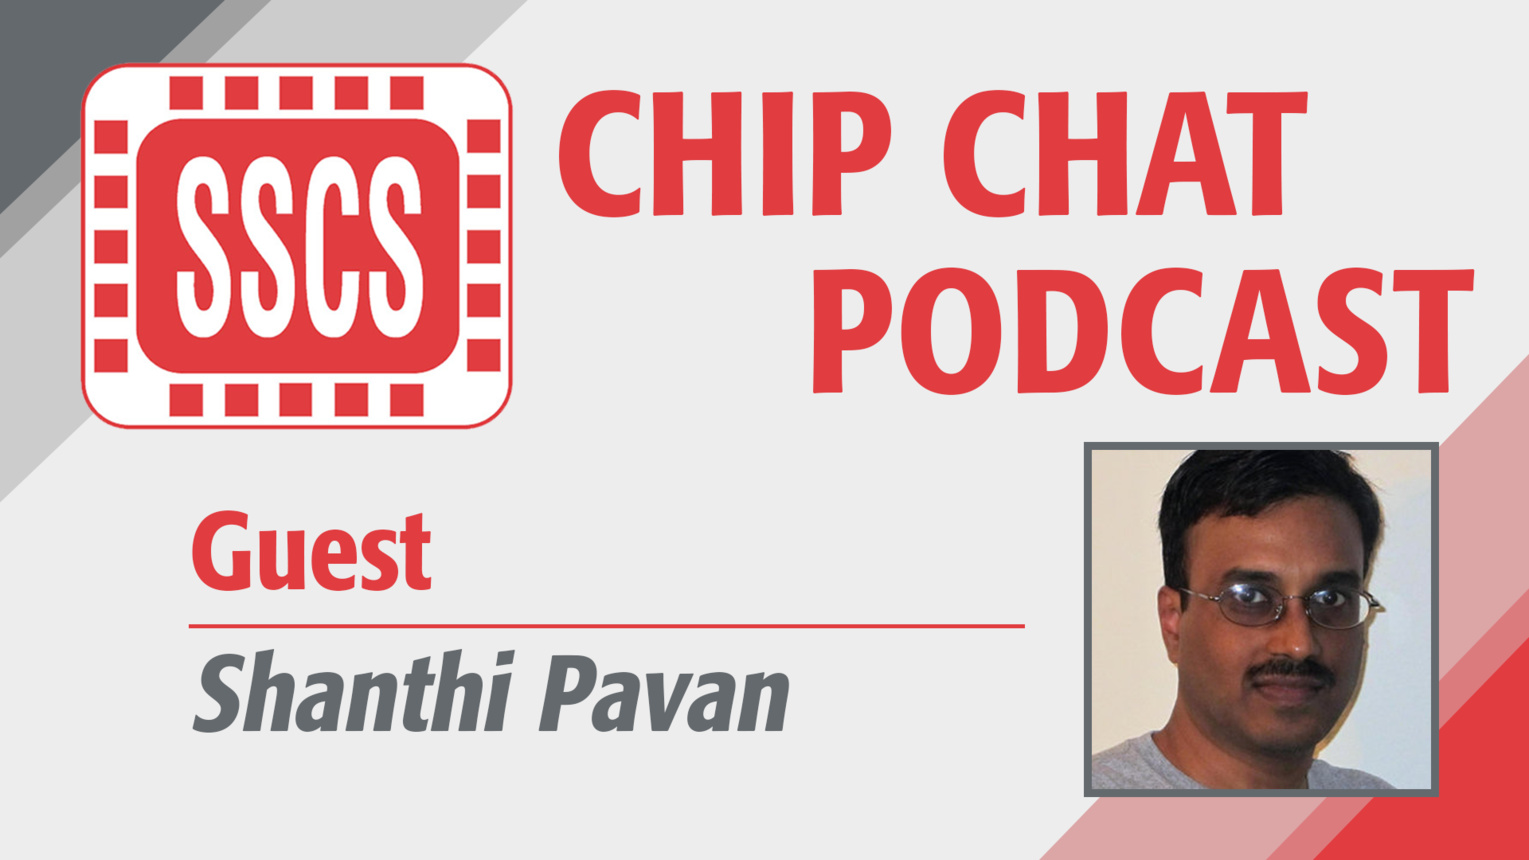 Shanthi Pavan - SSCS Chip Chat Podcast, Episode 3